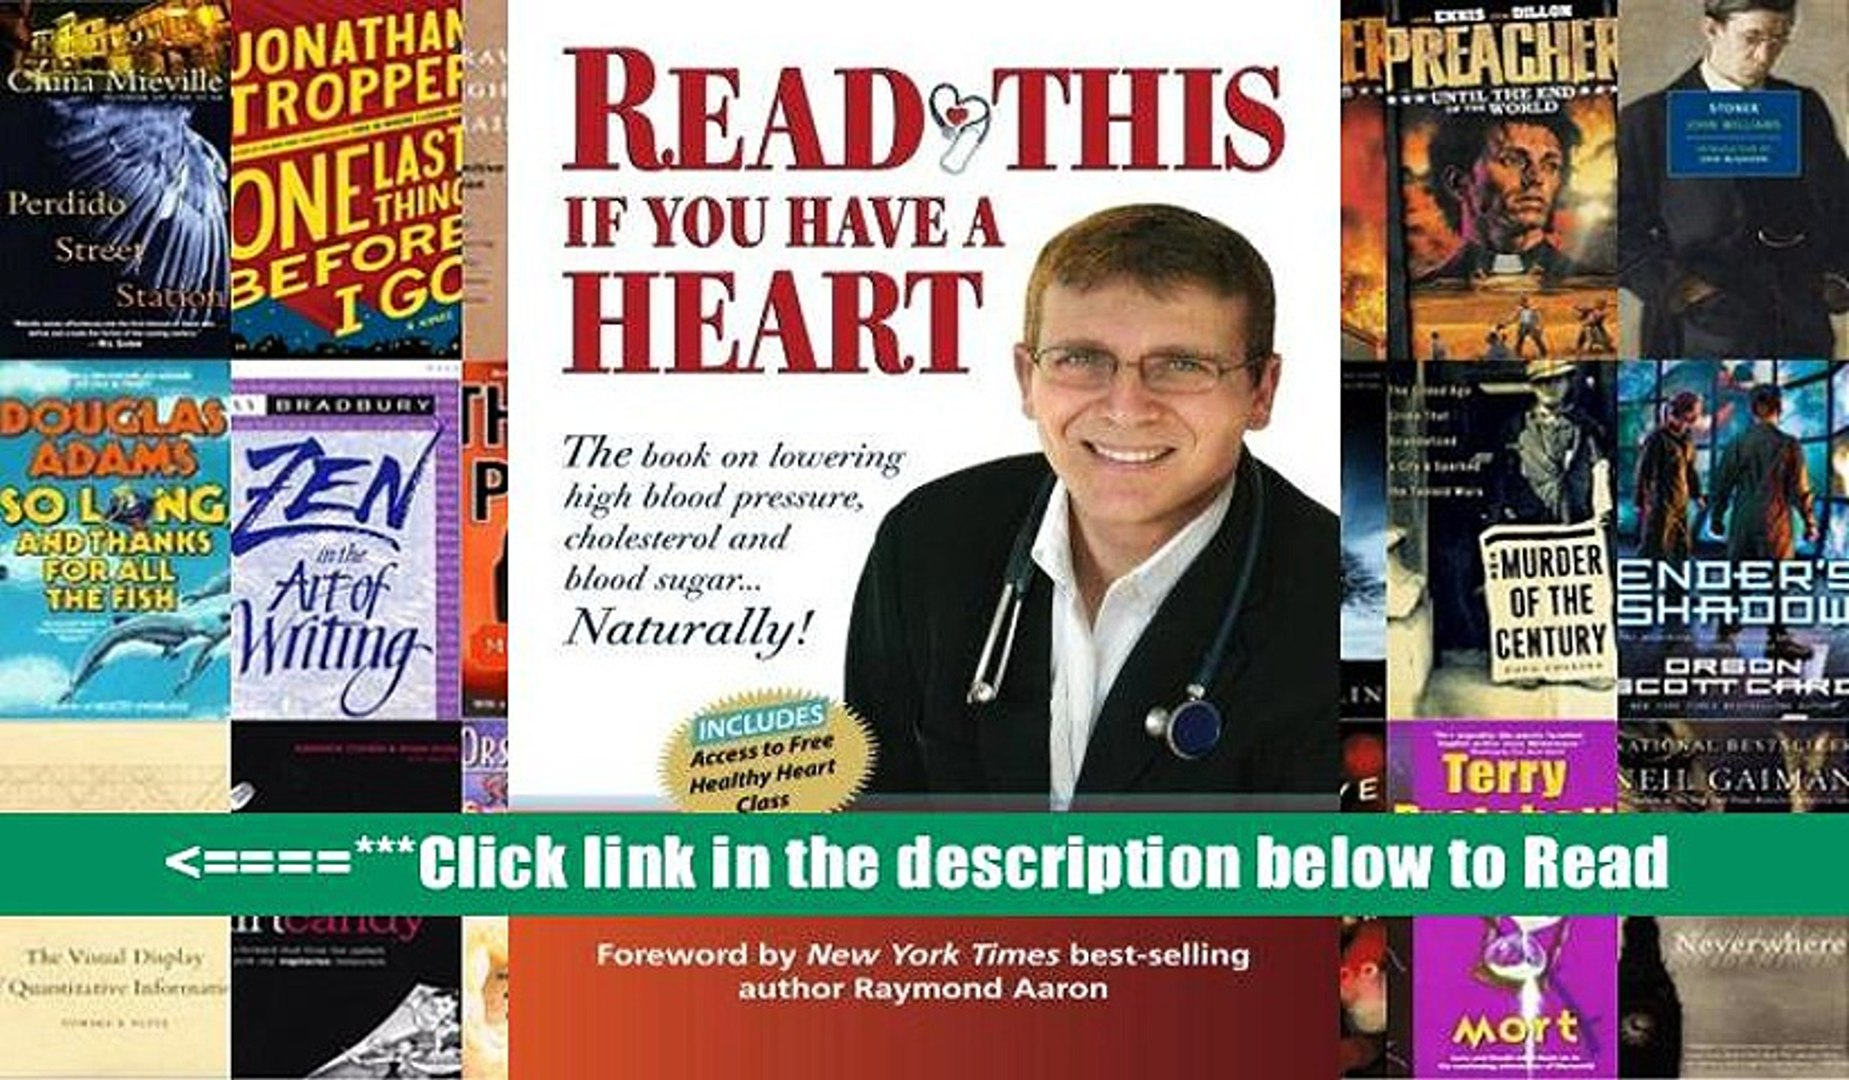 Read This if you Have A Heart: The book on lowering high blood Pressure, cholesterol and blood